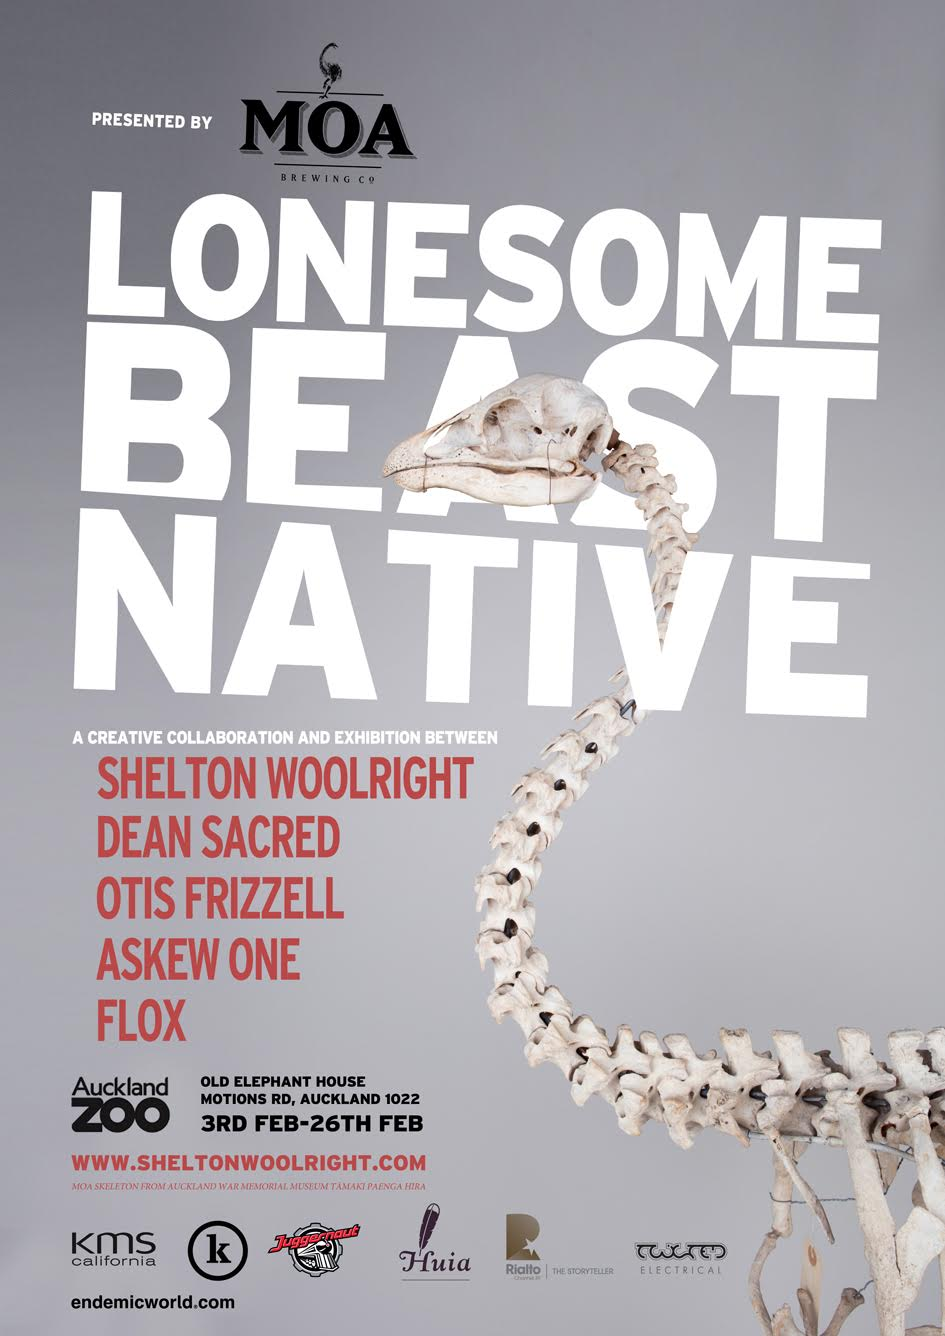 Lonesome Beast Native